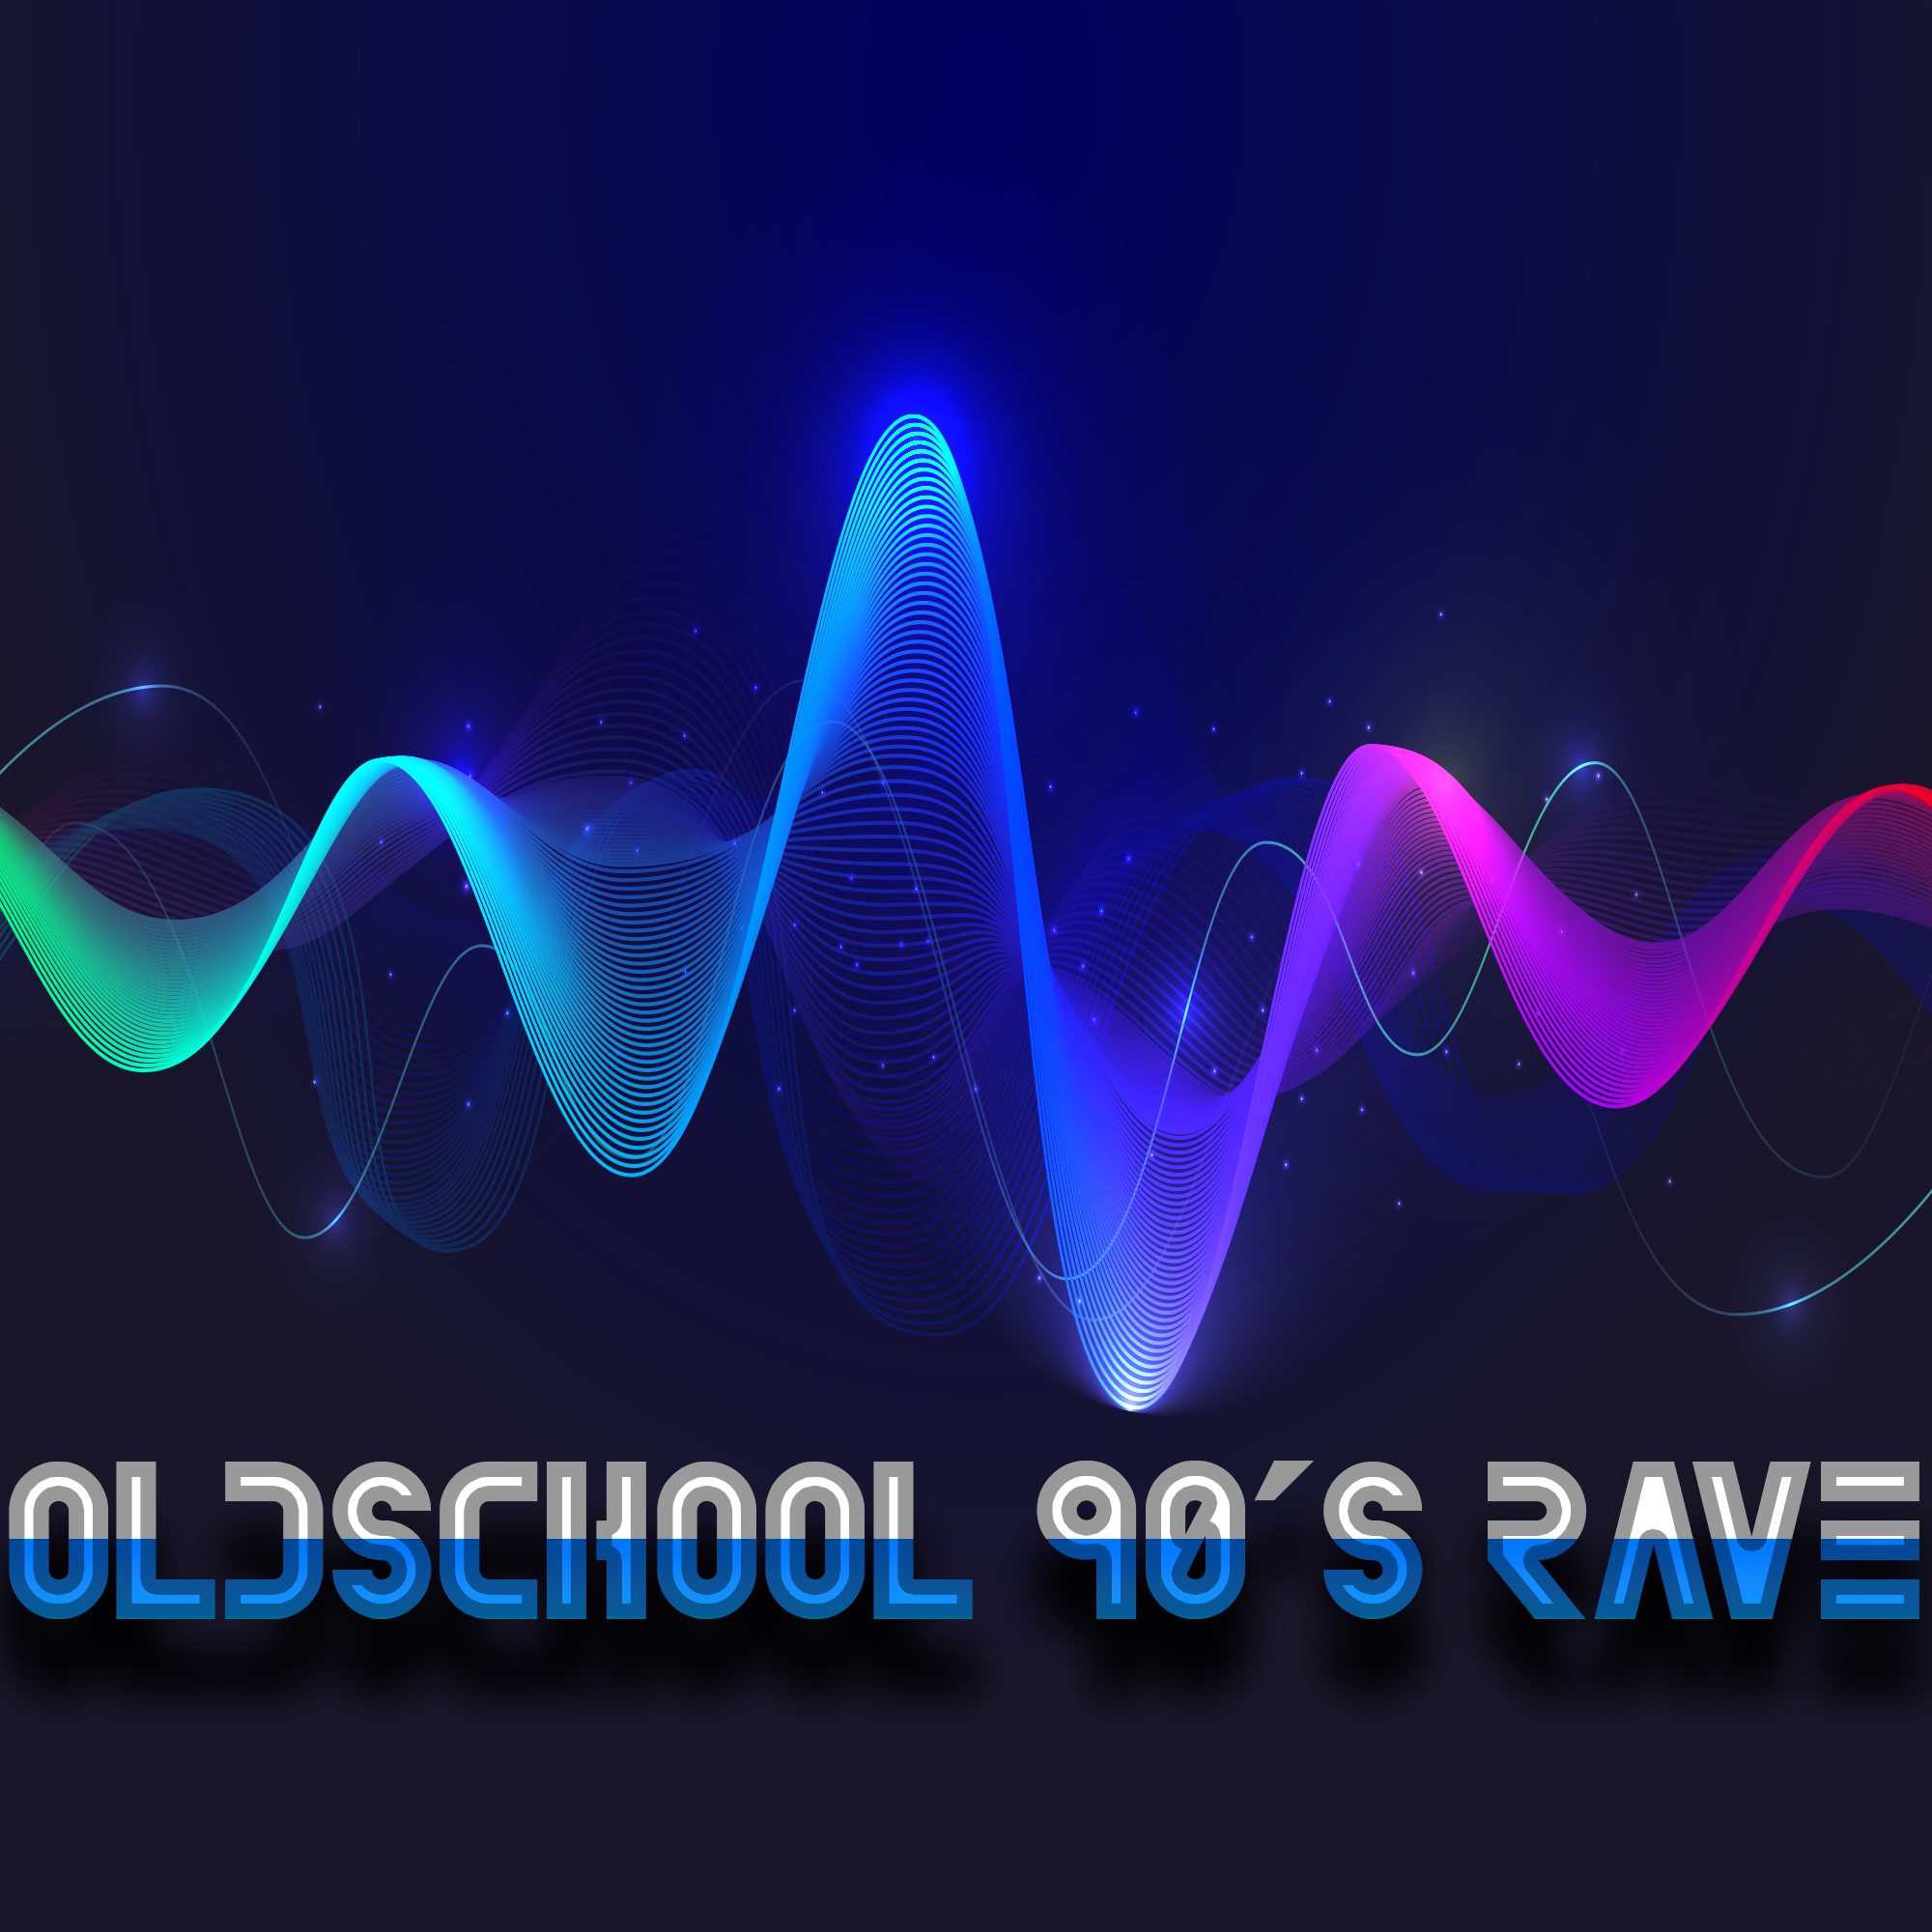 Oldschool 90's Rave, Techno, Trance, House